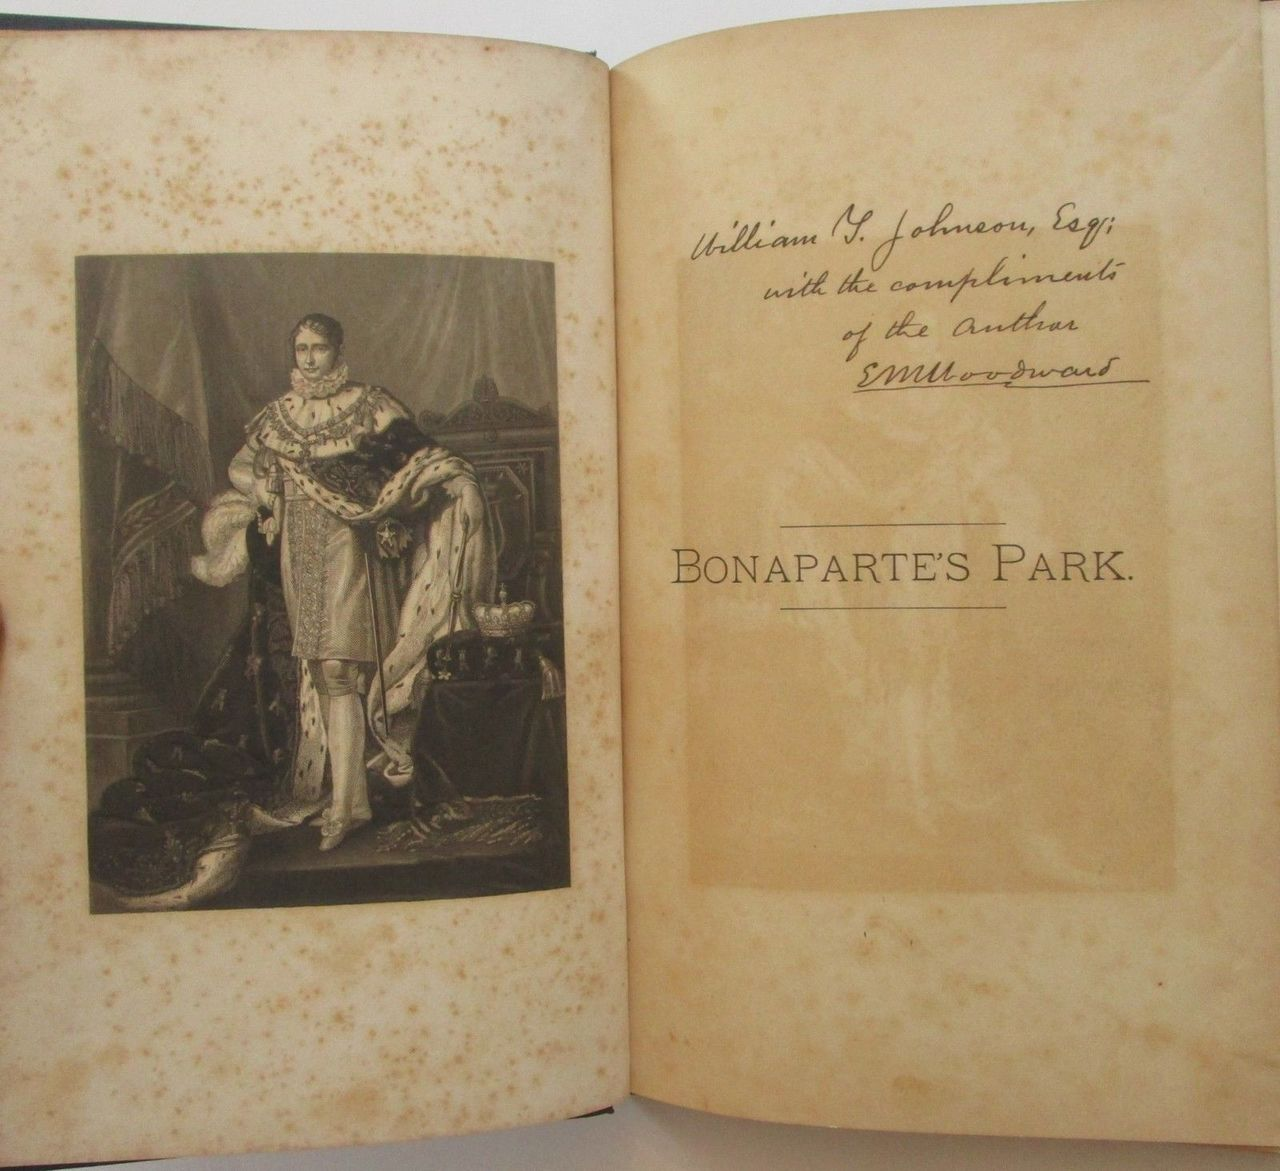 BONAPARTE'S PARK & THE MURATS, by E.M. Woodward - 1879 [SIGNED]